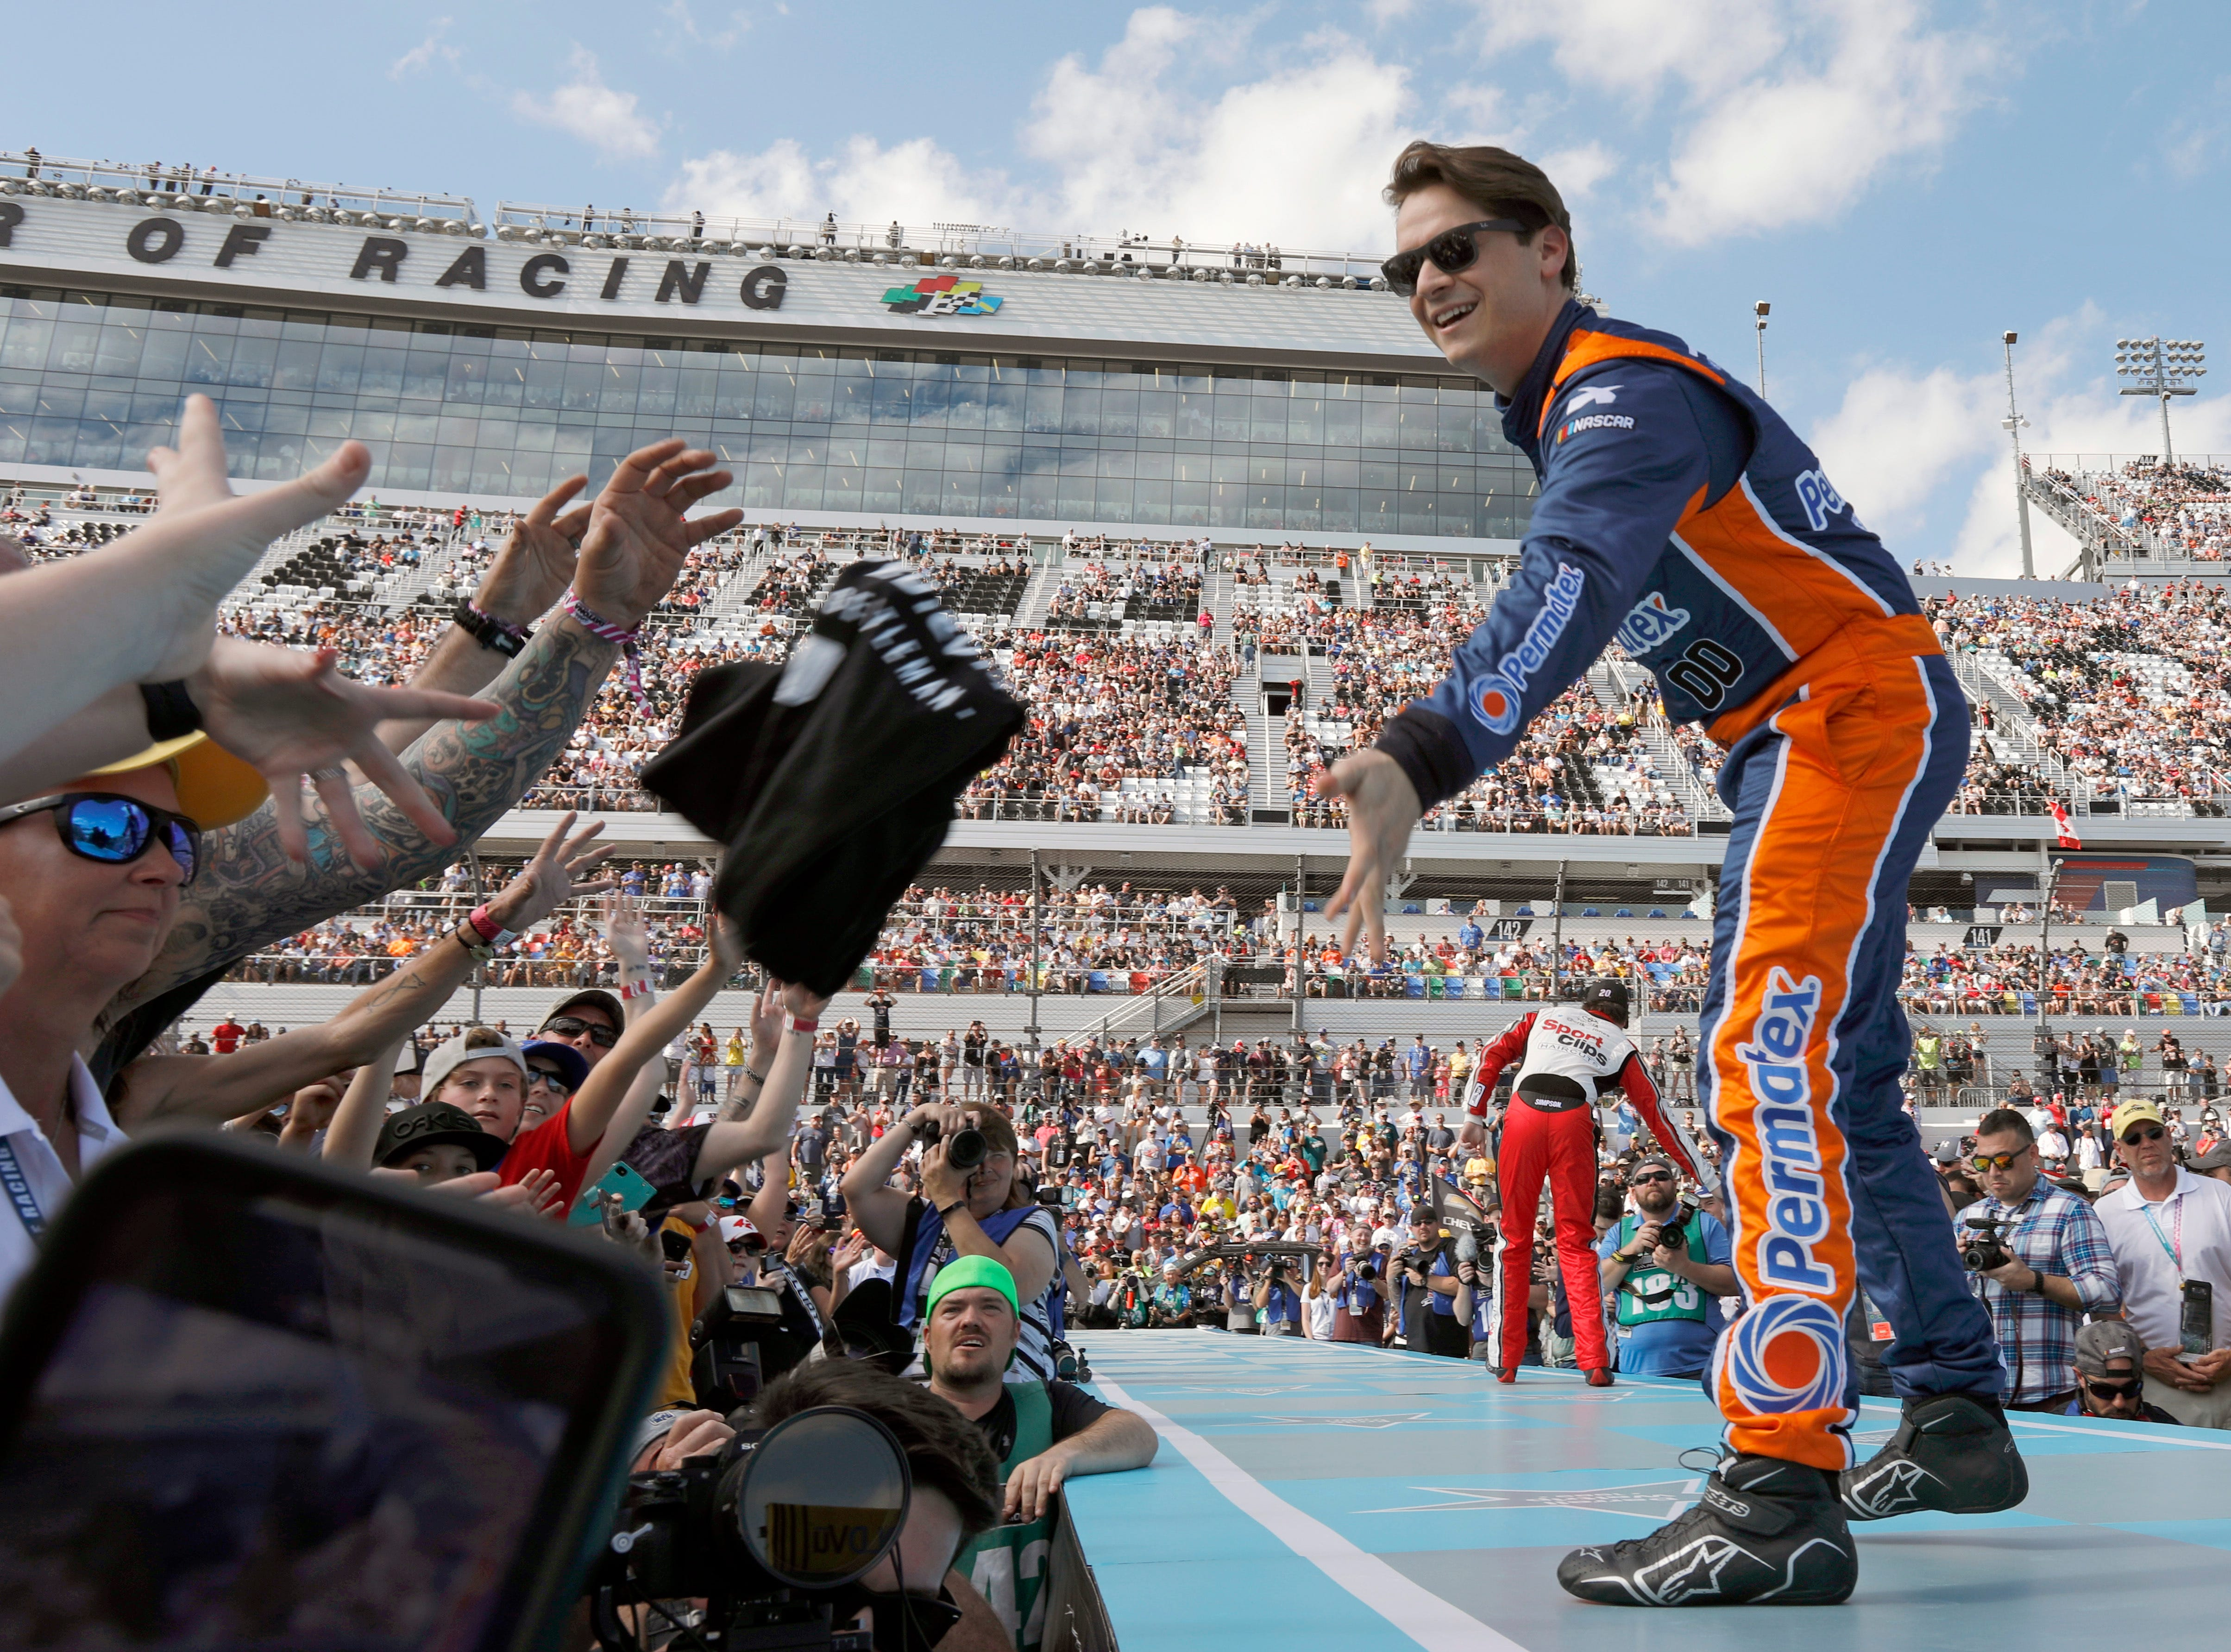 Landon Cassill, right, tosses a T-shirt to fans during driver introductions before a NASCAR Daytona 500 auto race at Daytona International Speedway.